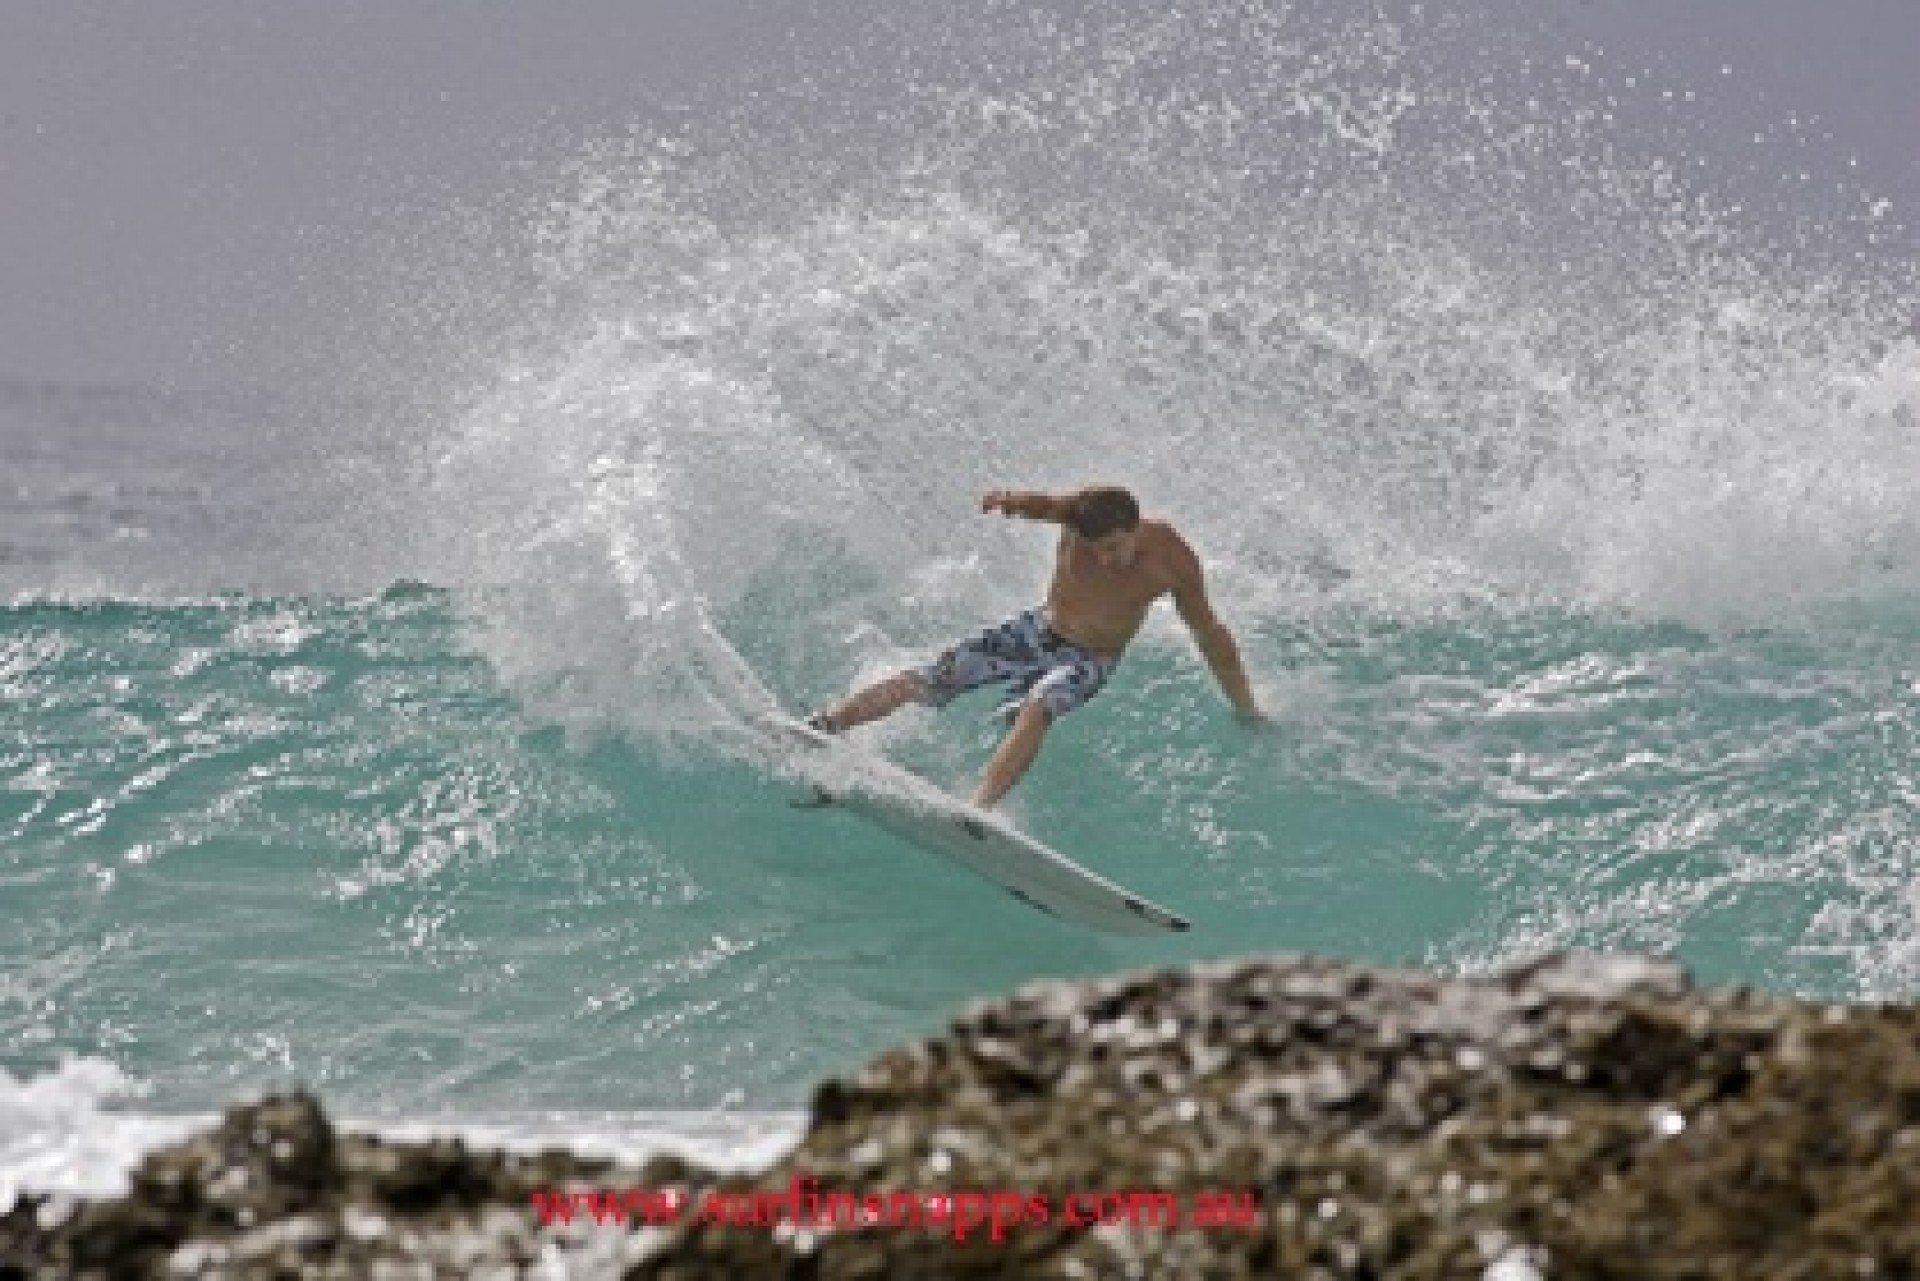 snapps's photo of Snapper Rocks